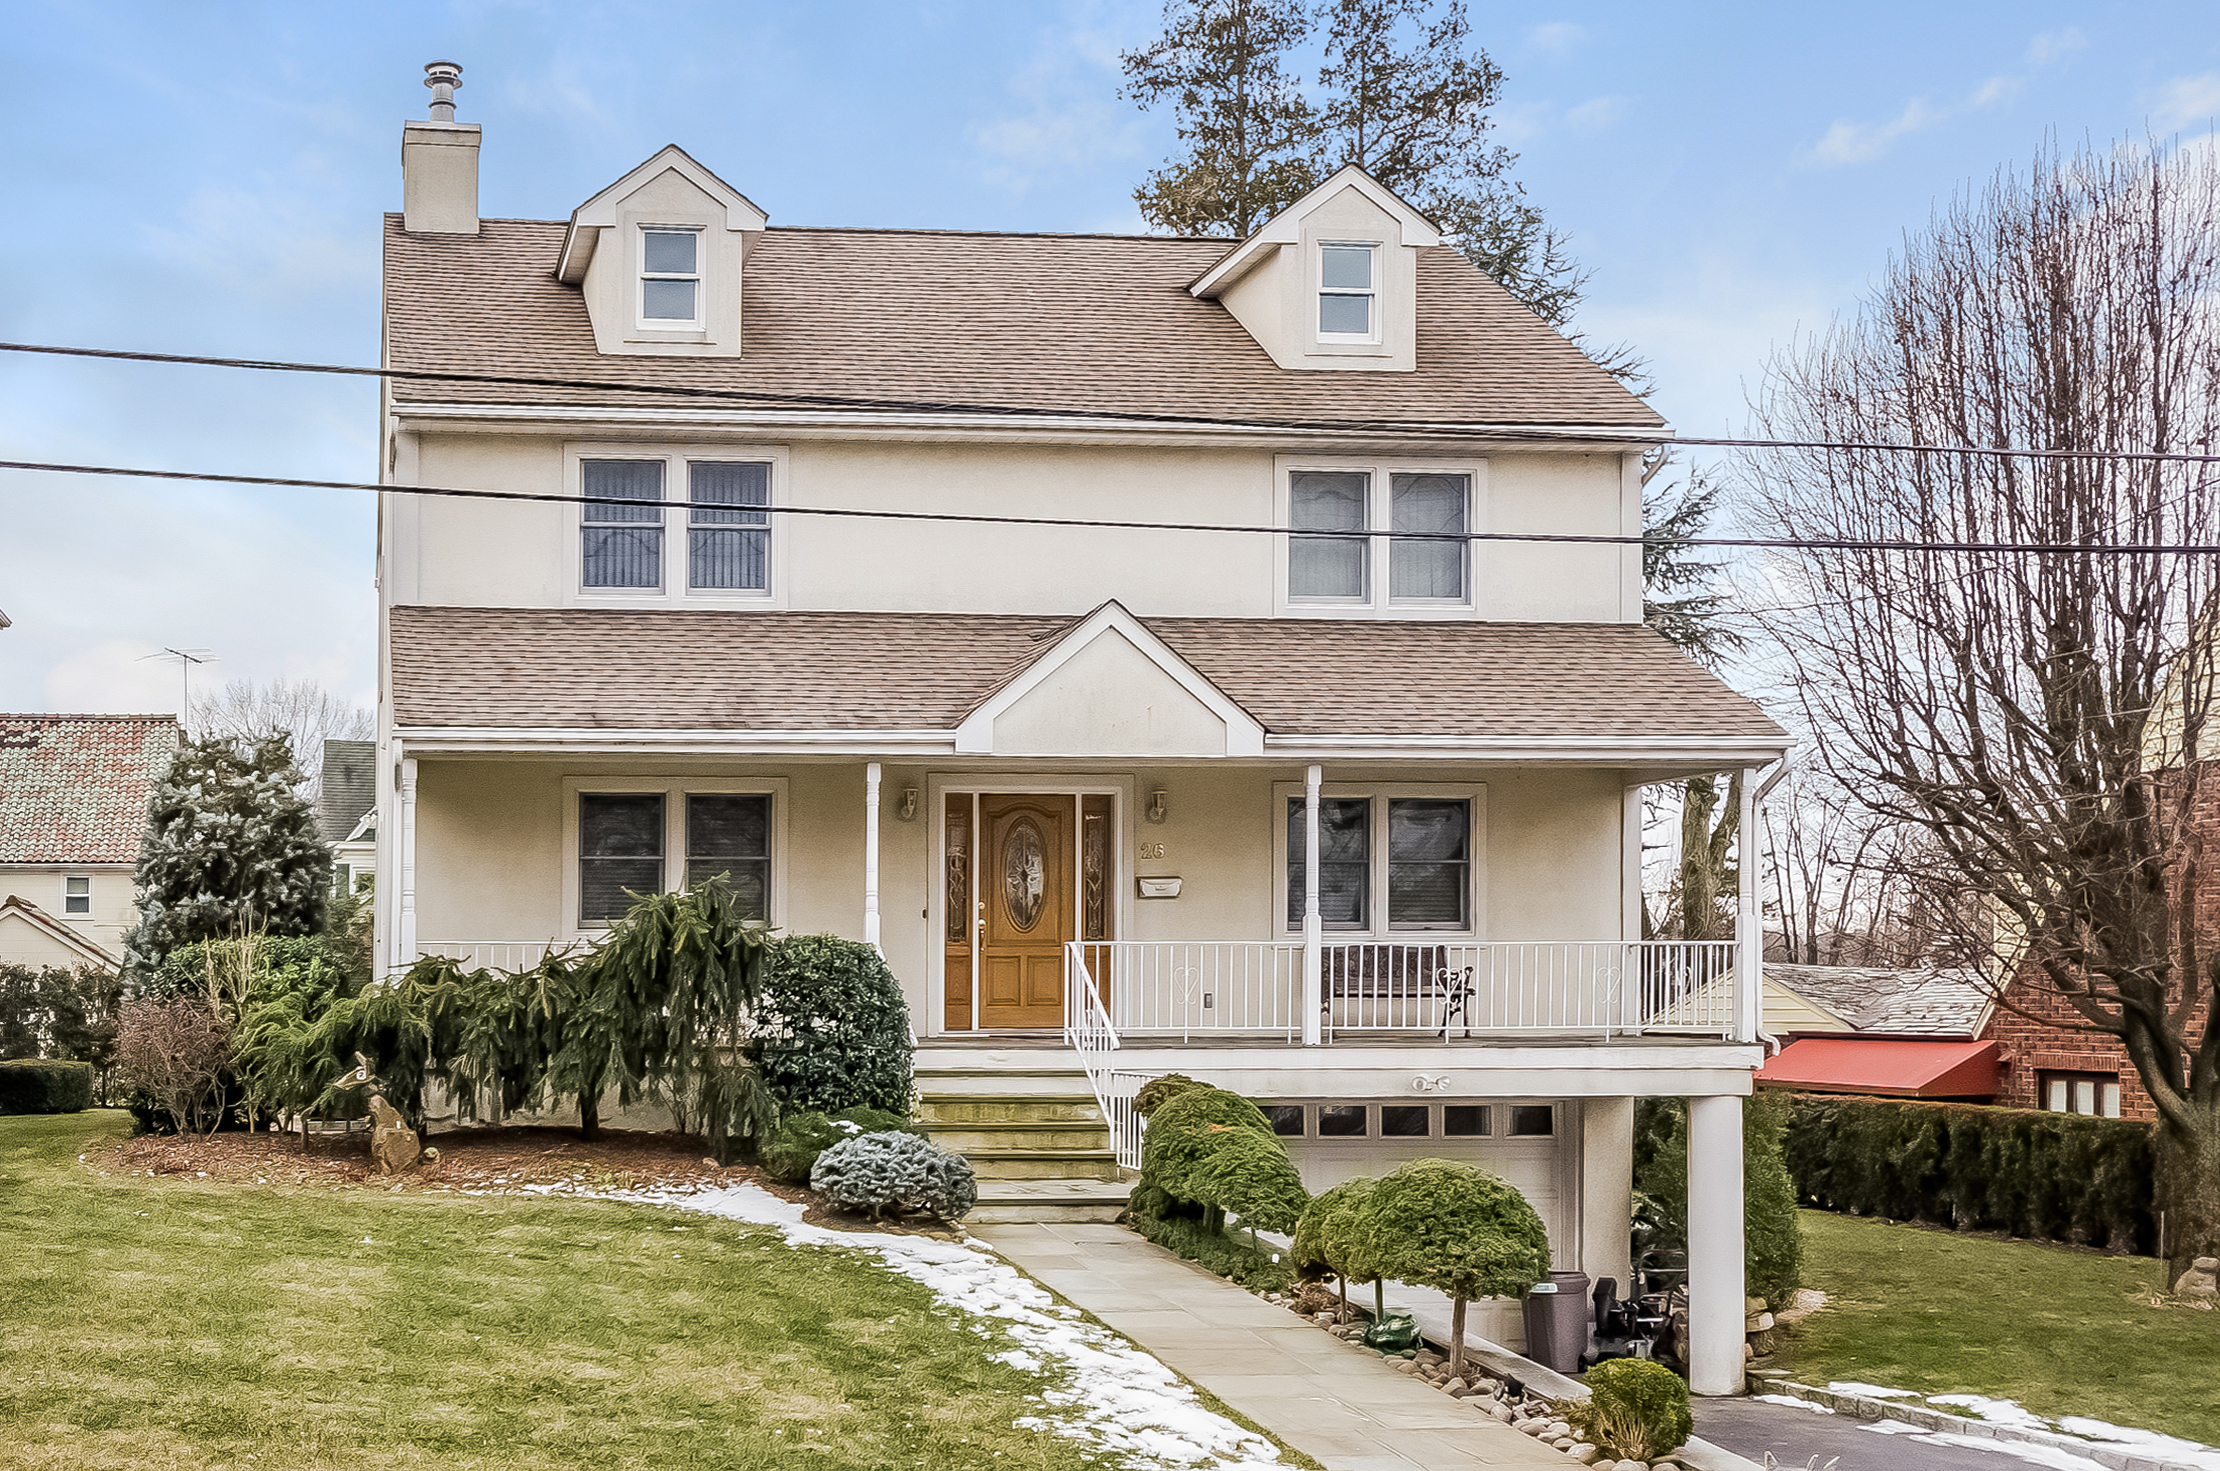 Single Family Home for Sale at 26 Anderson Avenue Scarsdale, New York 10583 United States